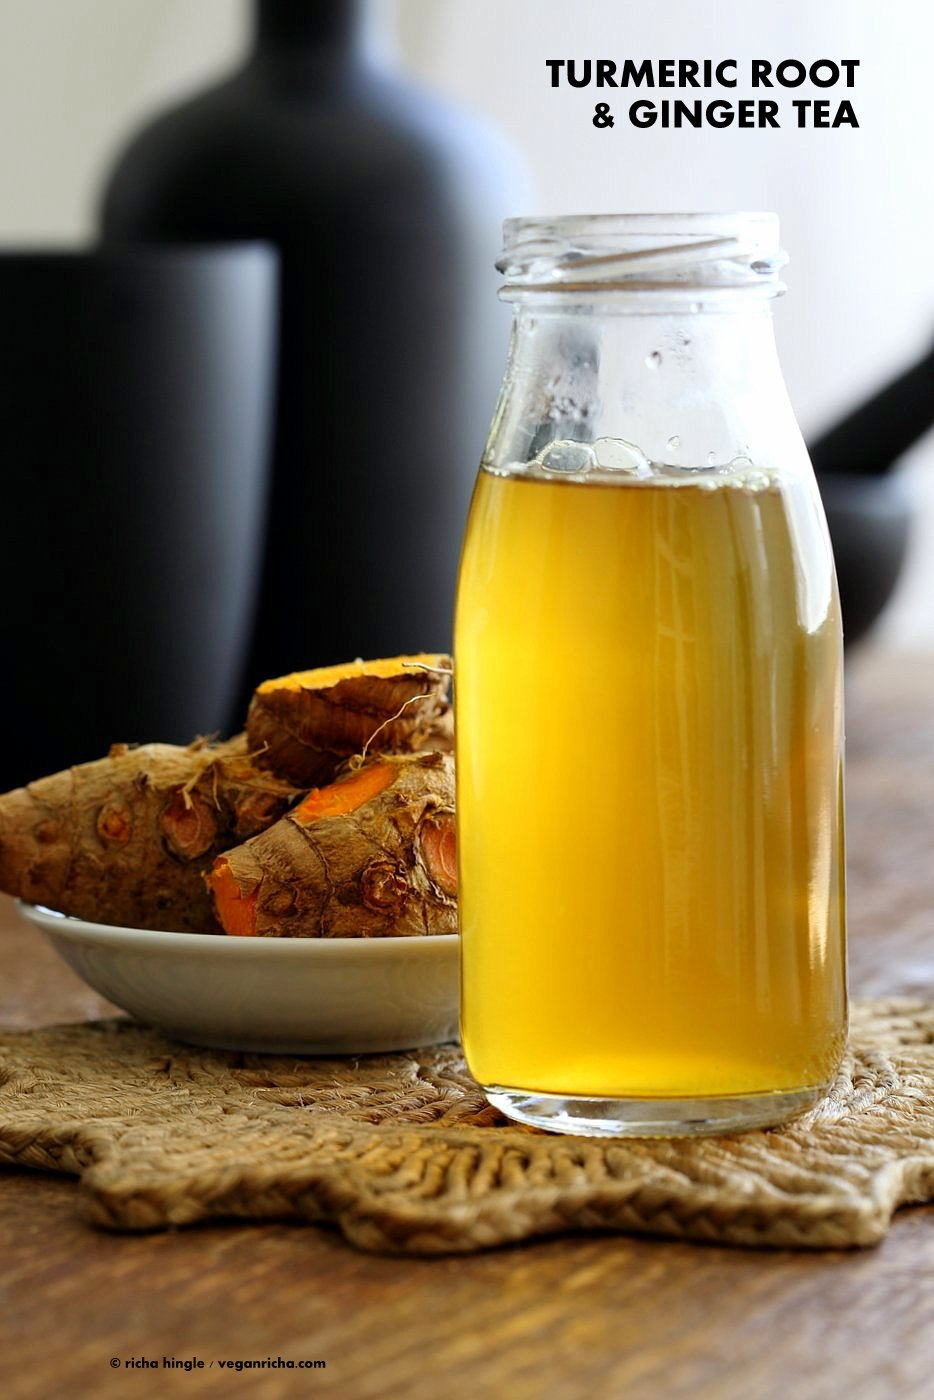 Ginger Turmeric Root Tea. Fresh Turmeric Root and ginger simmered with black pepper to make a soothing healing turmeric tonic. Add sweetener of choice. Serve hot or chilled. Vegan Gluten-free Recipe | VeganRicha.com